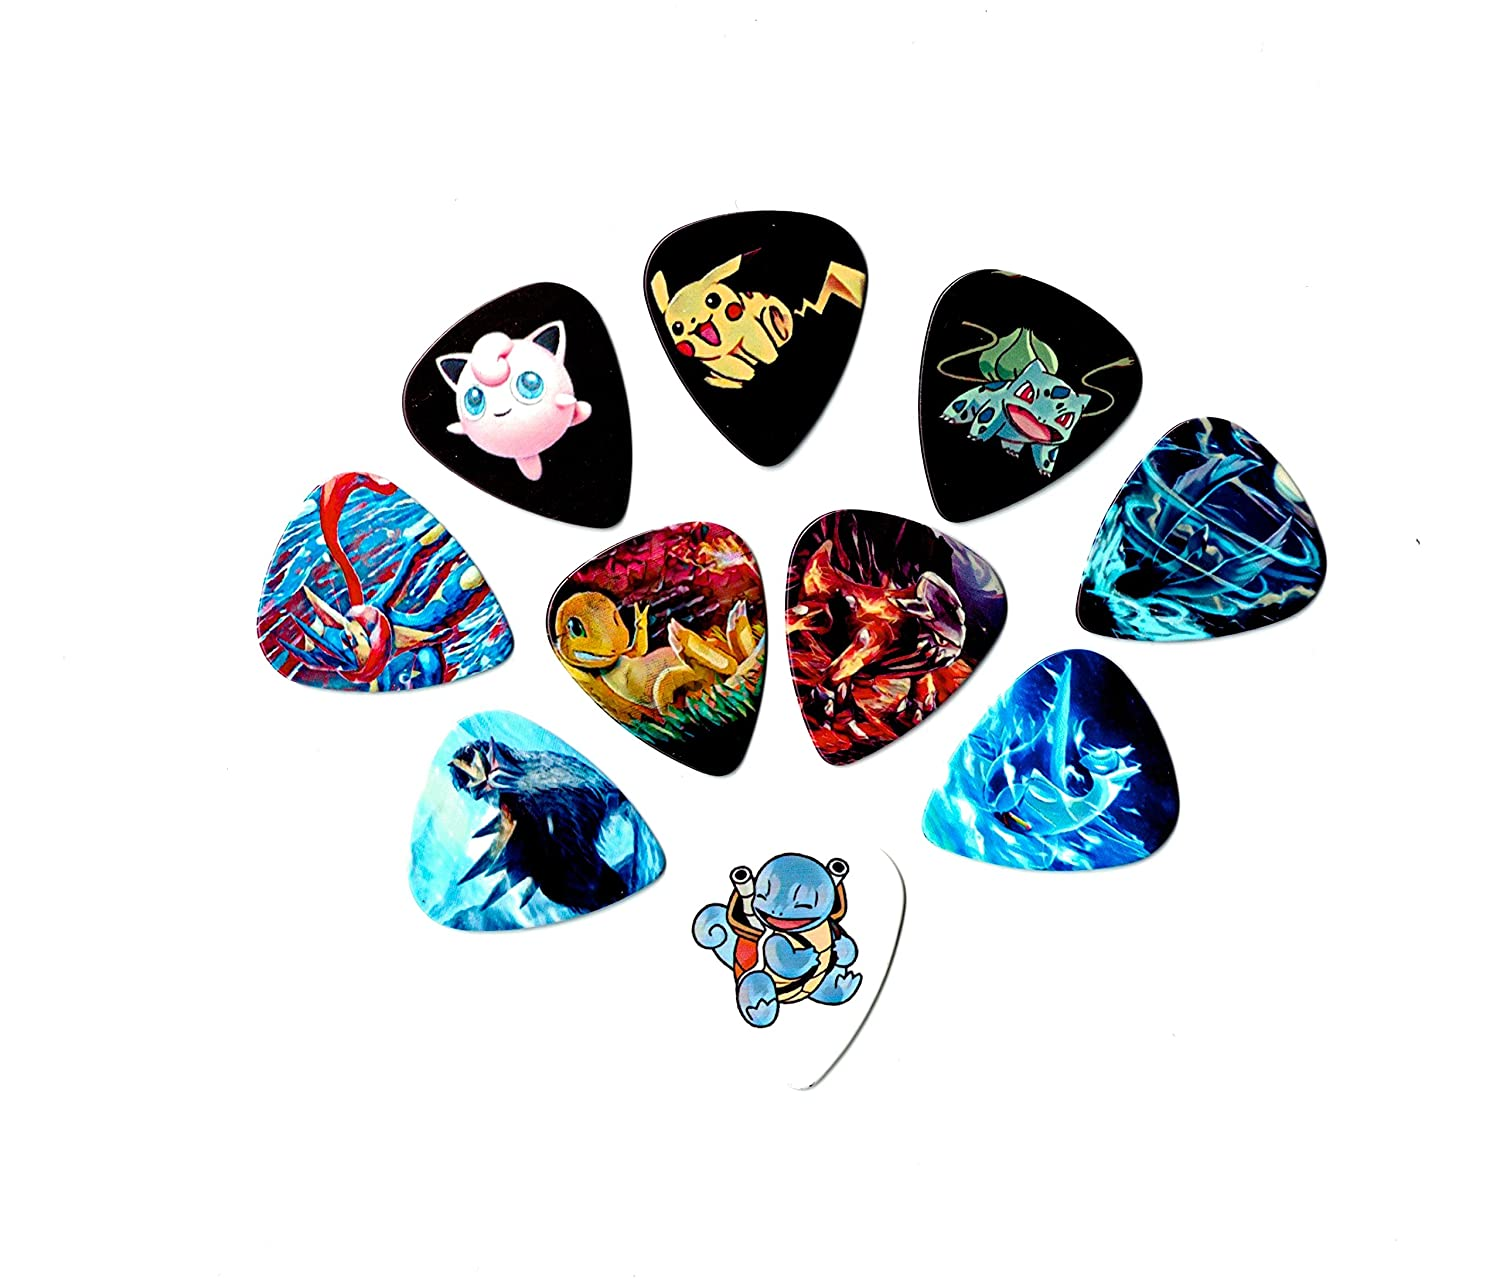 Amazon.com: Pokemon Guitar Picks (10 beautiful picks in a packet ...